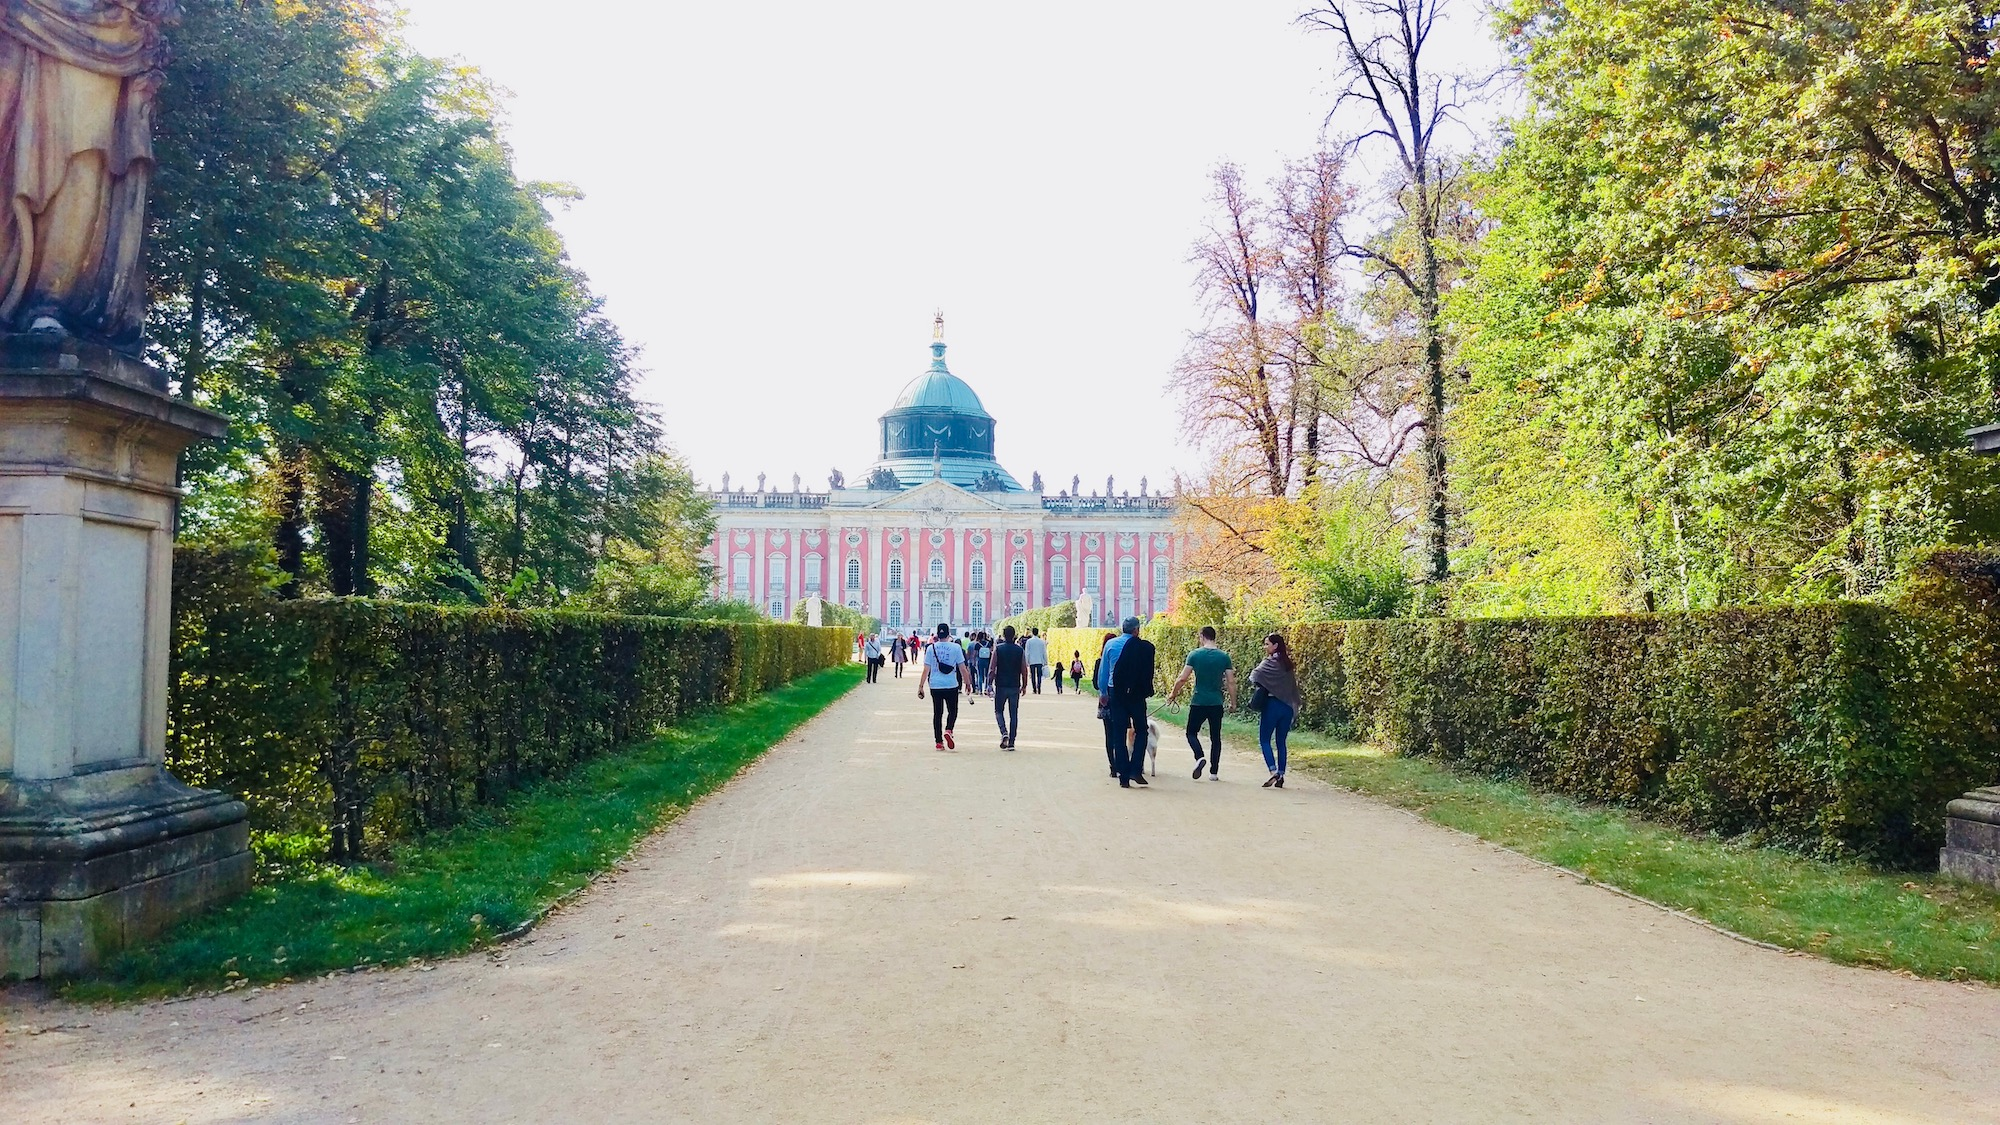 Alley that leads to New Palace, Potsdam.